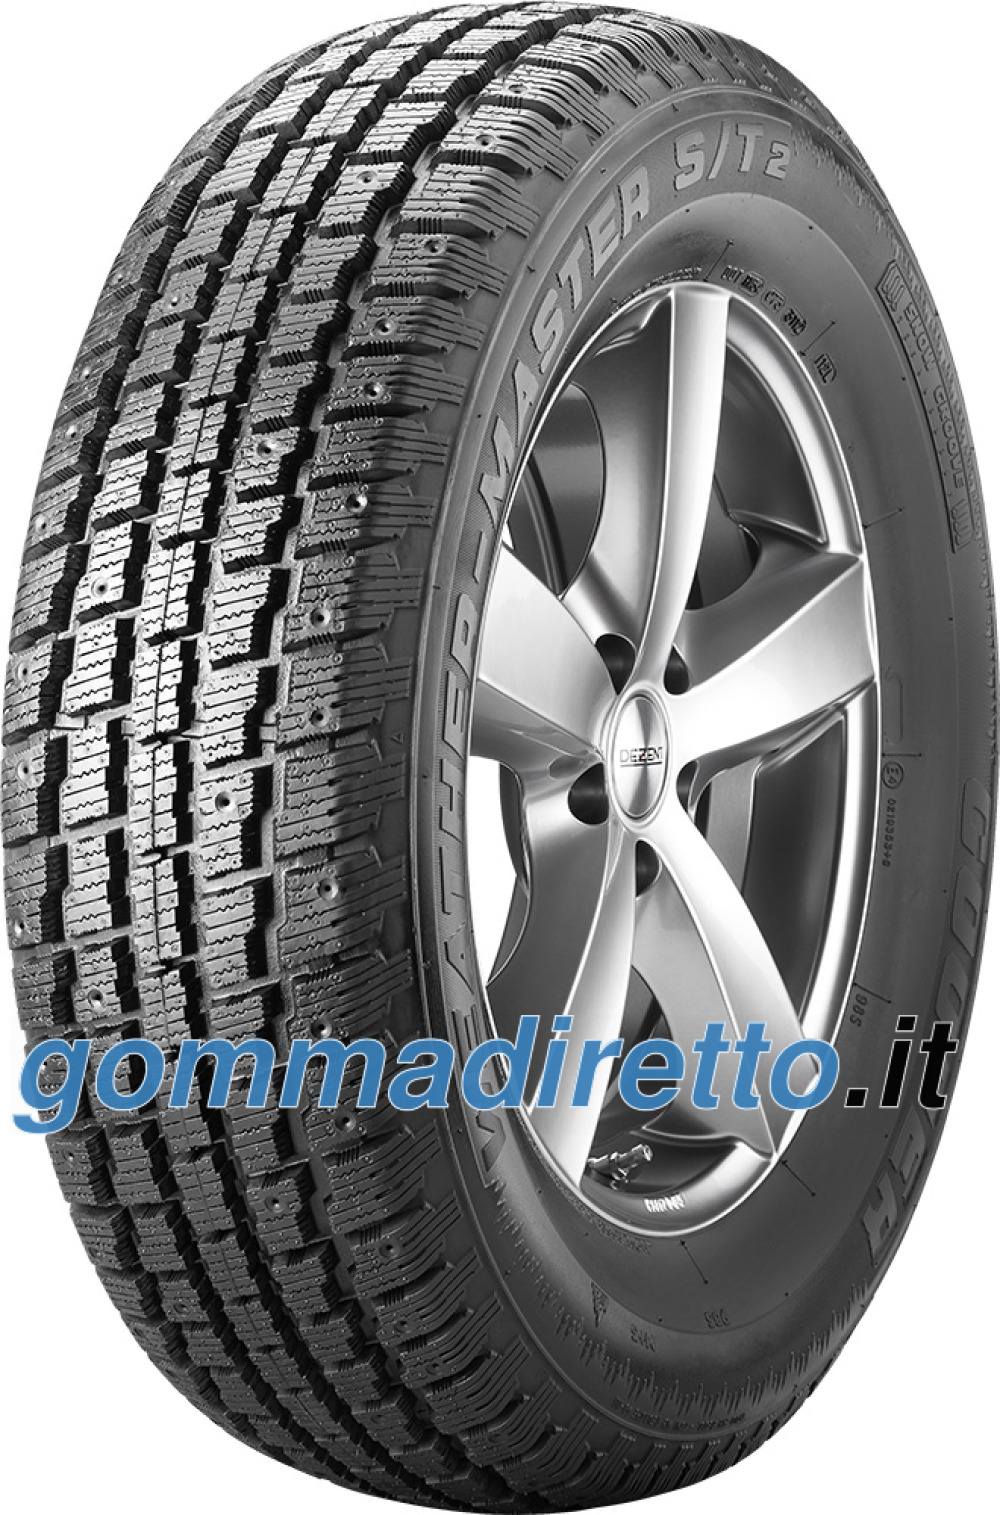 Image For Cooper Weather-master S/T2 ( 225/75 R15 102S pneumatico chiodabile WSS )